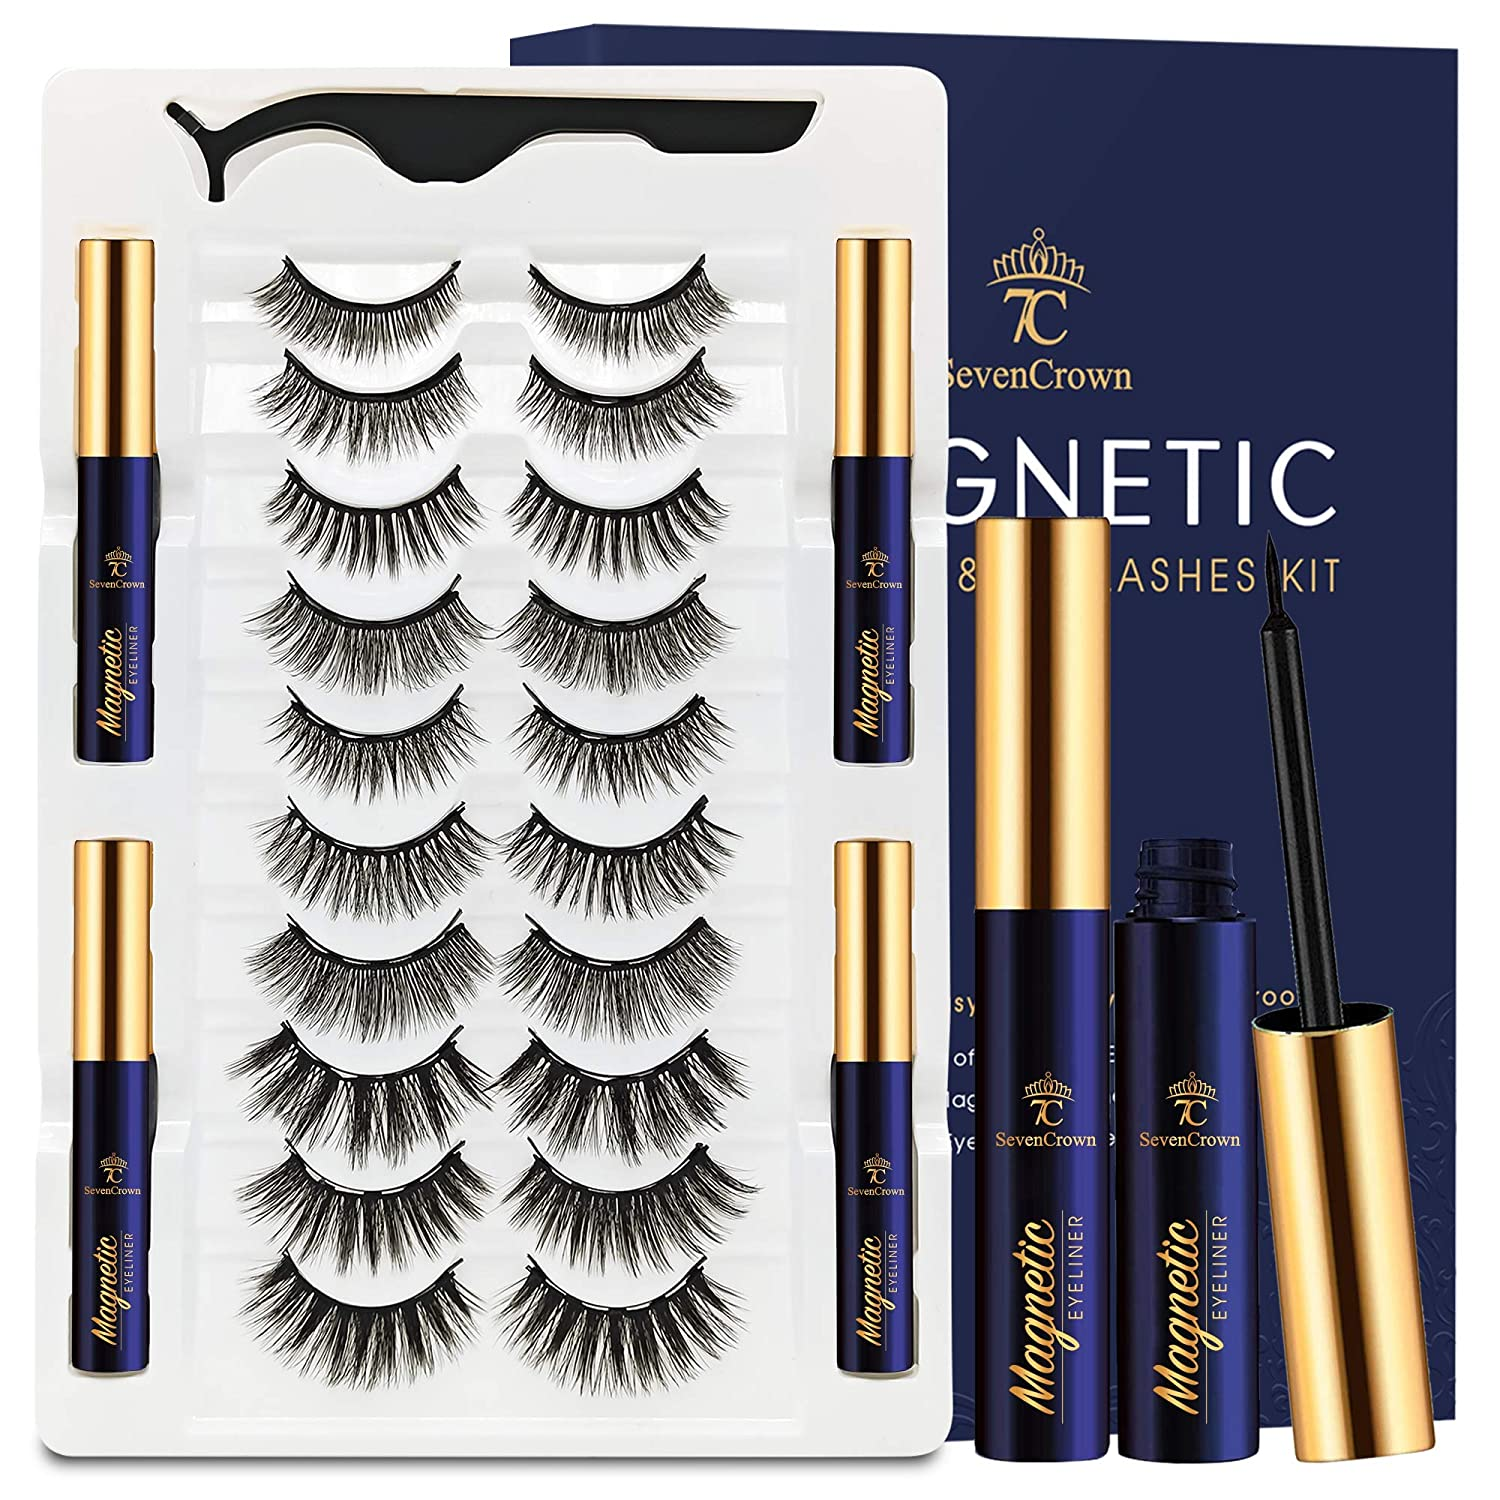 New products world's highest quality popular 3D Magnetic Eyelashes Max 77% OFF with Eyeliner - SEVENCROWN Kit 7C